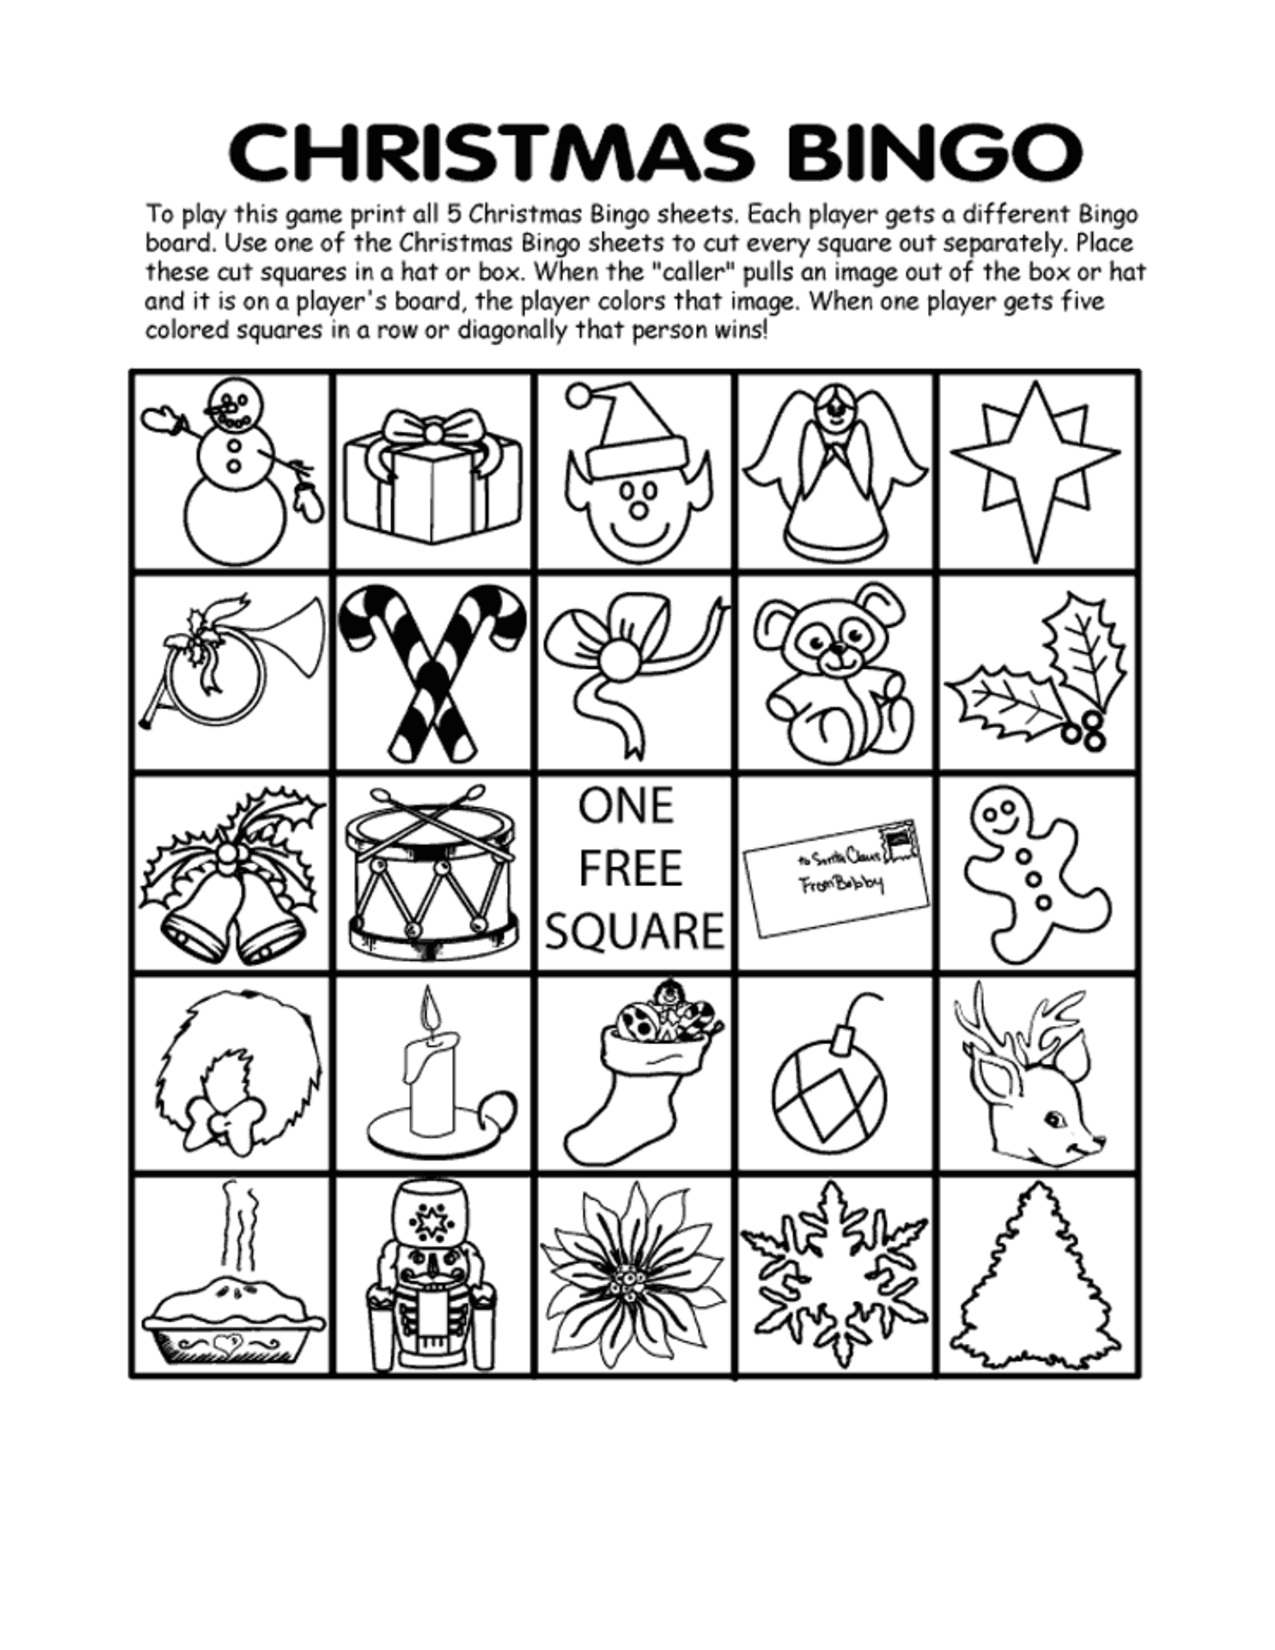 worksheet Free Printable Christmas Worksheets free printable christmas bingo cards best template collection collection